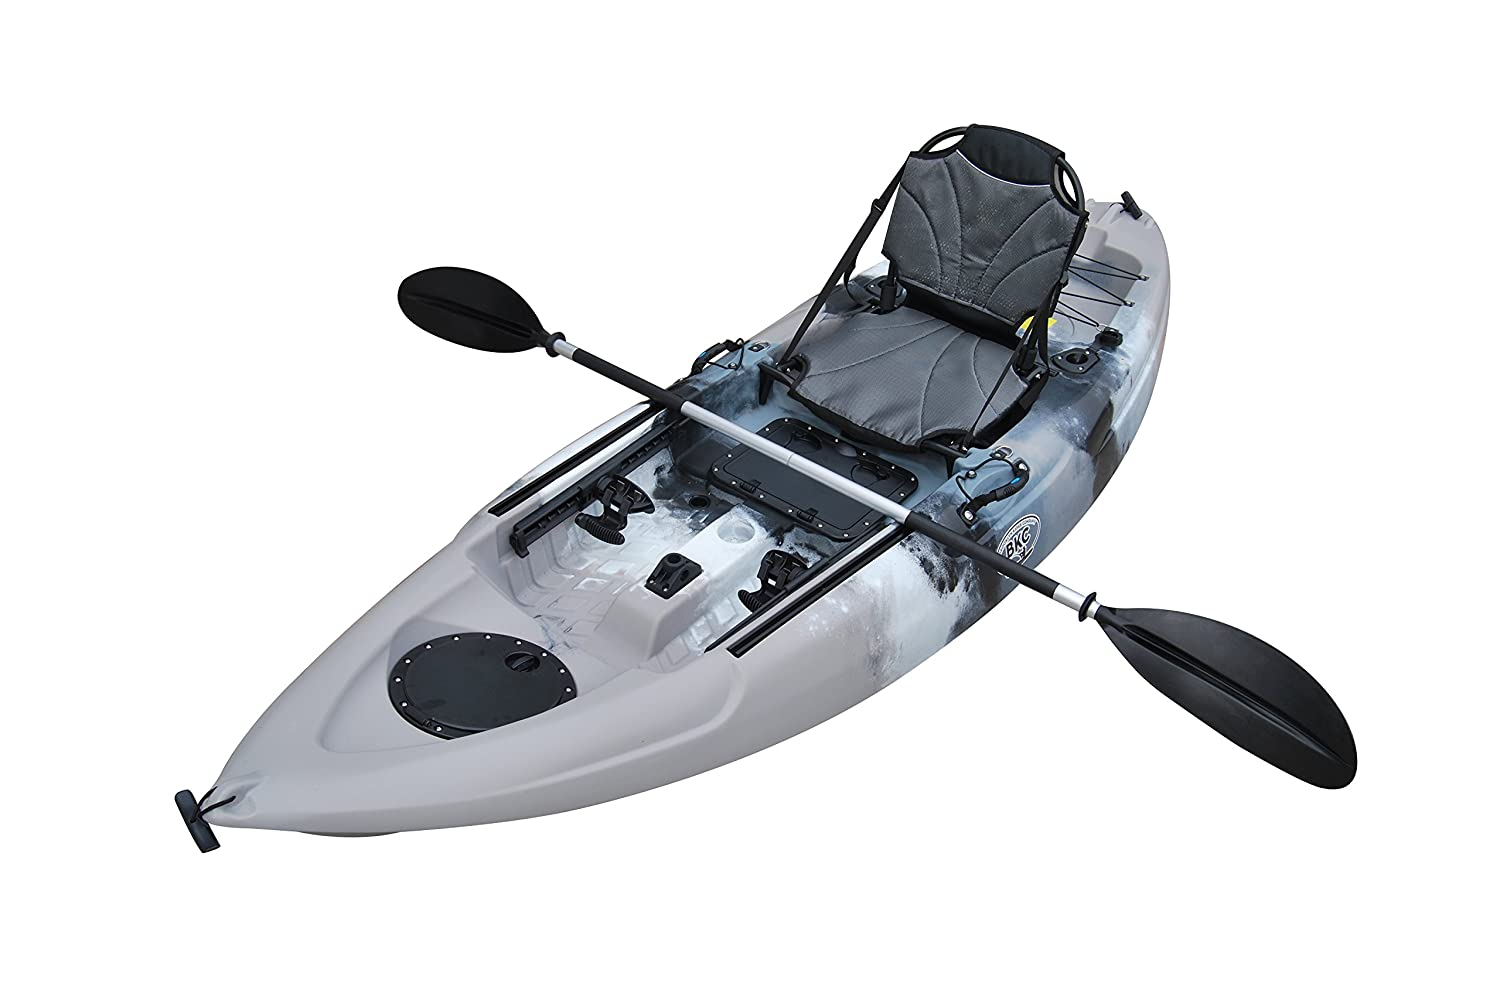 BKC UH-FK285 9.5 Foot Sit kayak